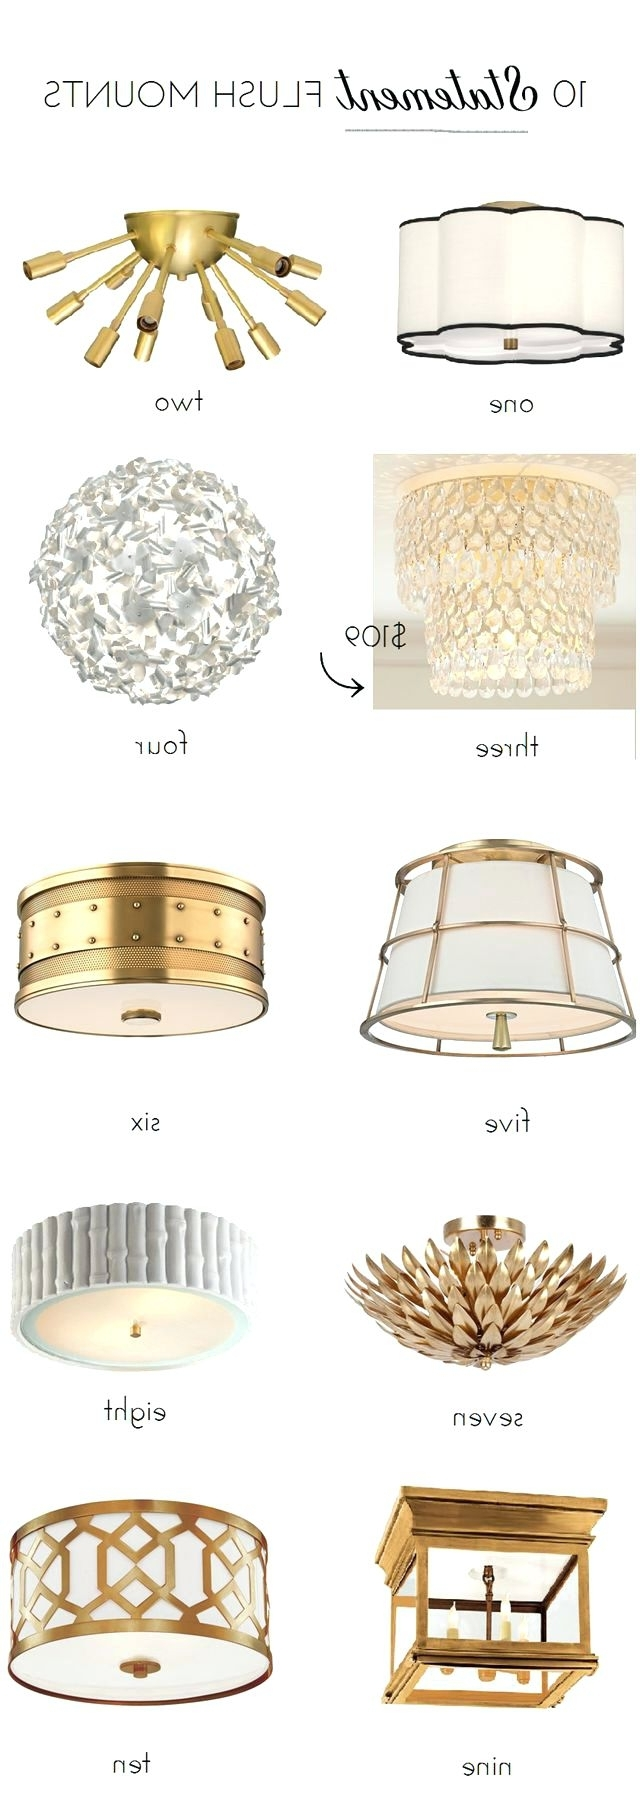 Widely Used Chandeliers ~ Chandeliers For Low Ceilings Uk Crystal Lighting Inside Small Chandeliers For Low Ceilings (View 6 of 15)